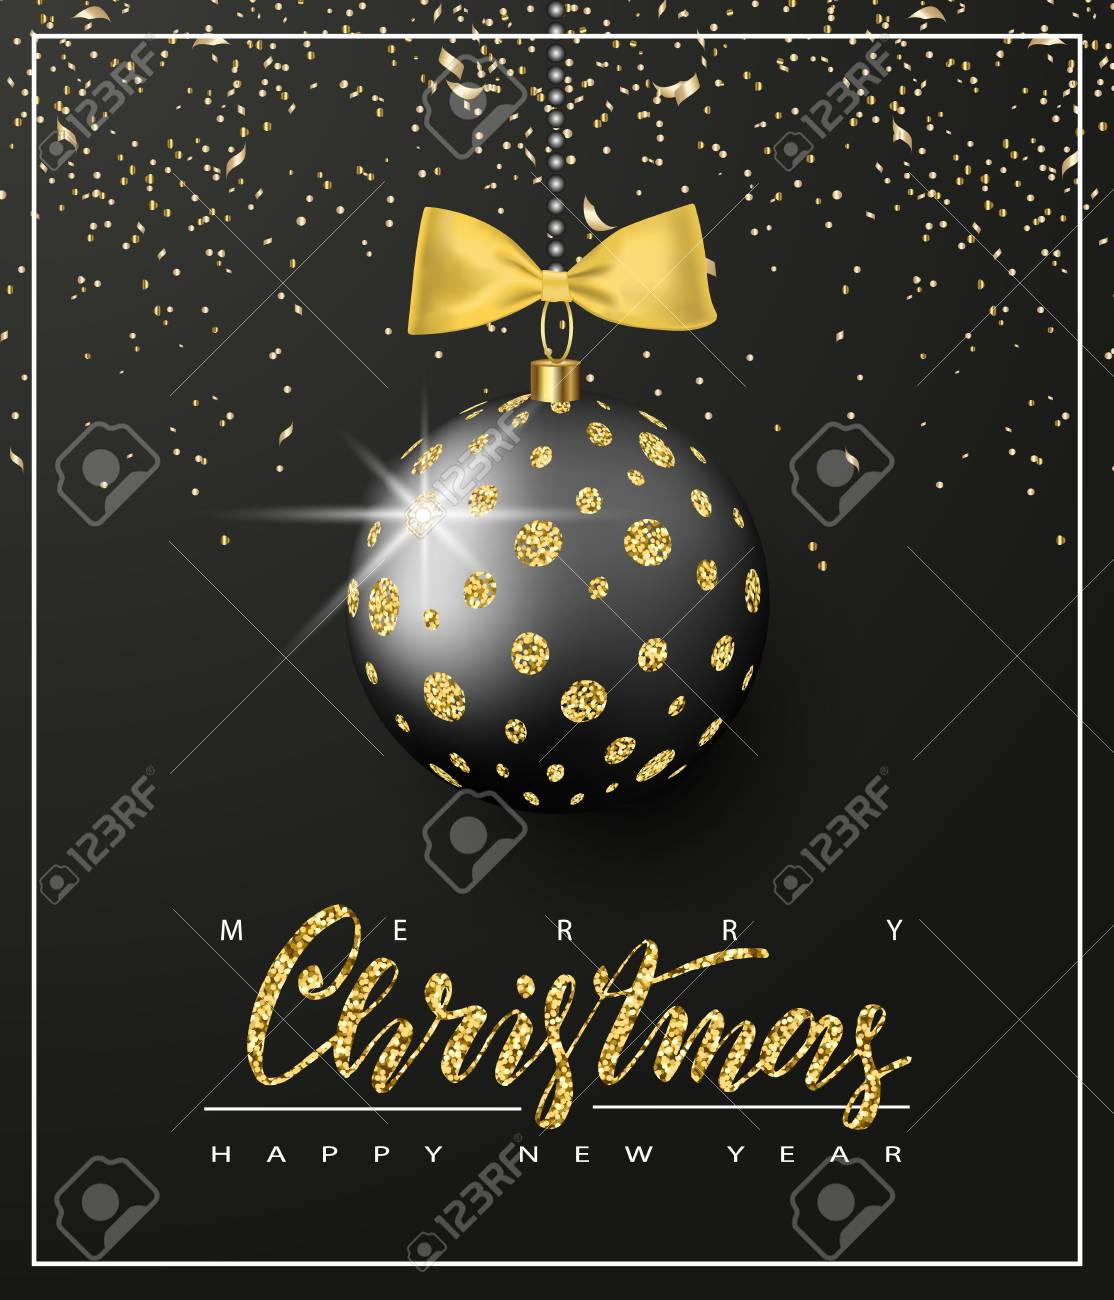 Ornate Christmas Ball With Glitter And Gold Bow On A Black Background. Christmas  Greeting Card